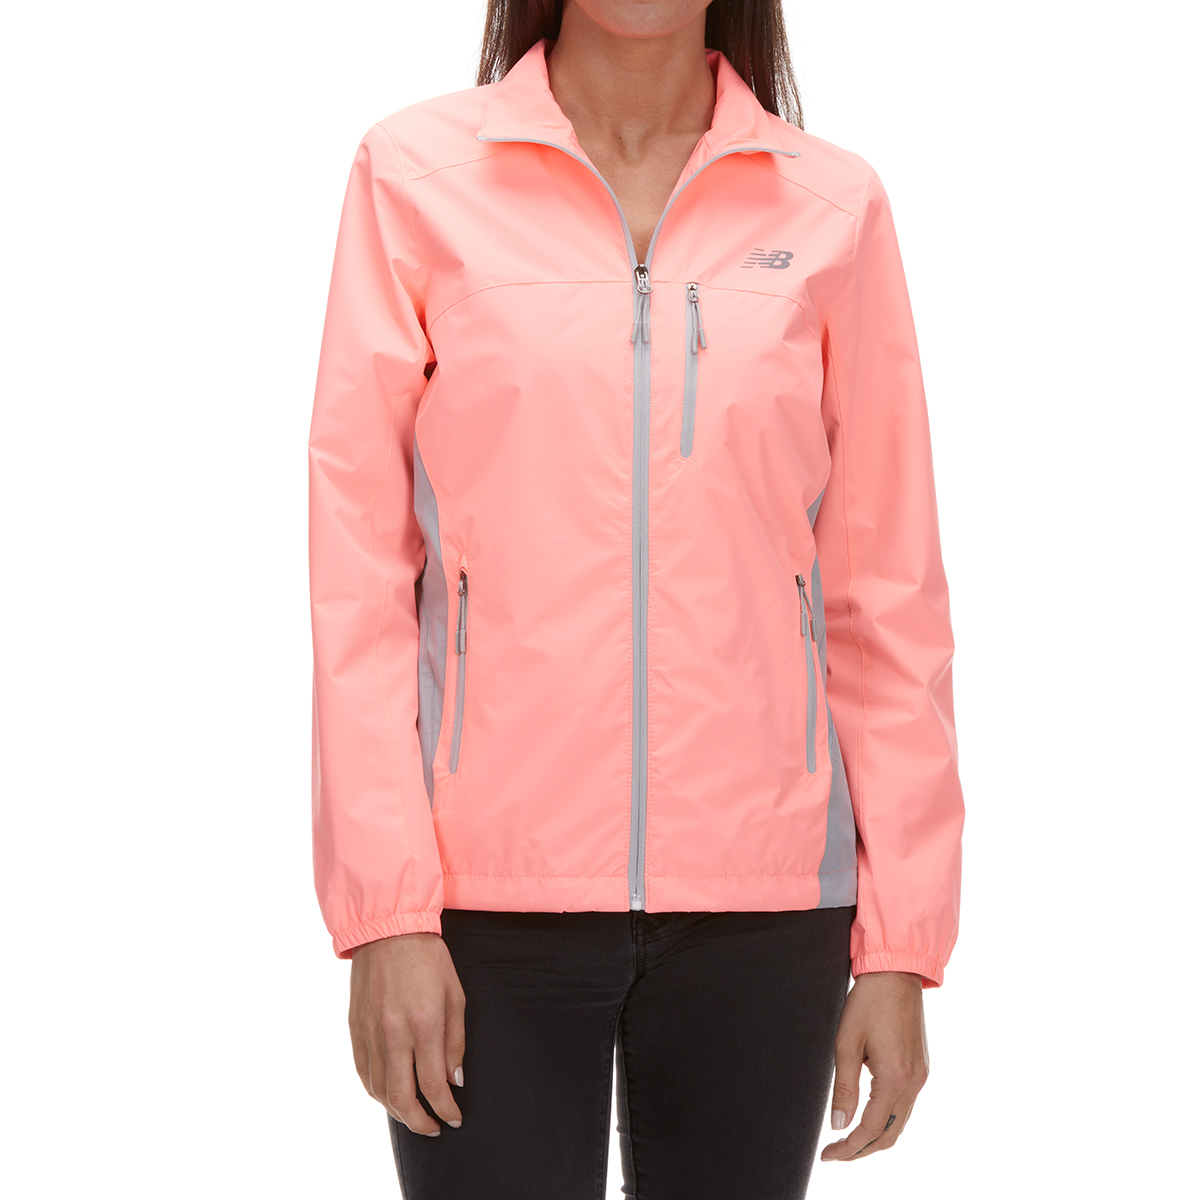 New Balance Women's Poly Dobby Mock Neck Jacket - Orange, L